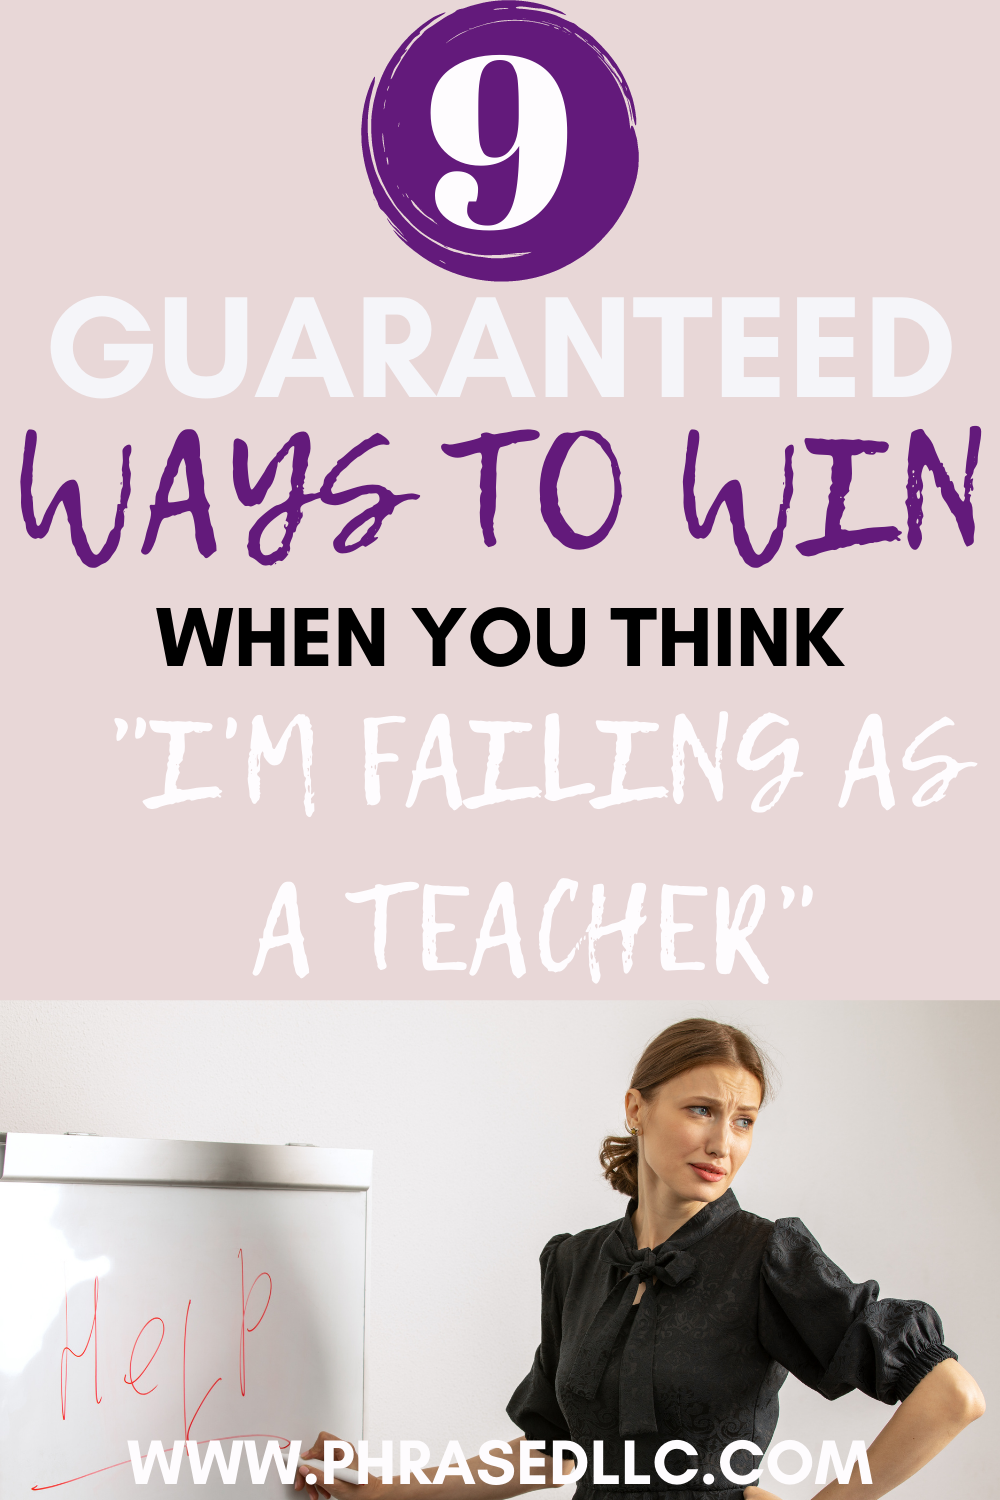 Ever thought I'm failing as a teacher? Here are 9 guaranteed ways to win when those thoughts come calling.